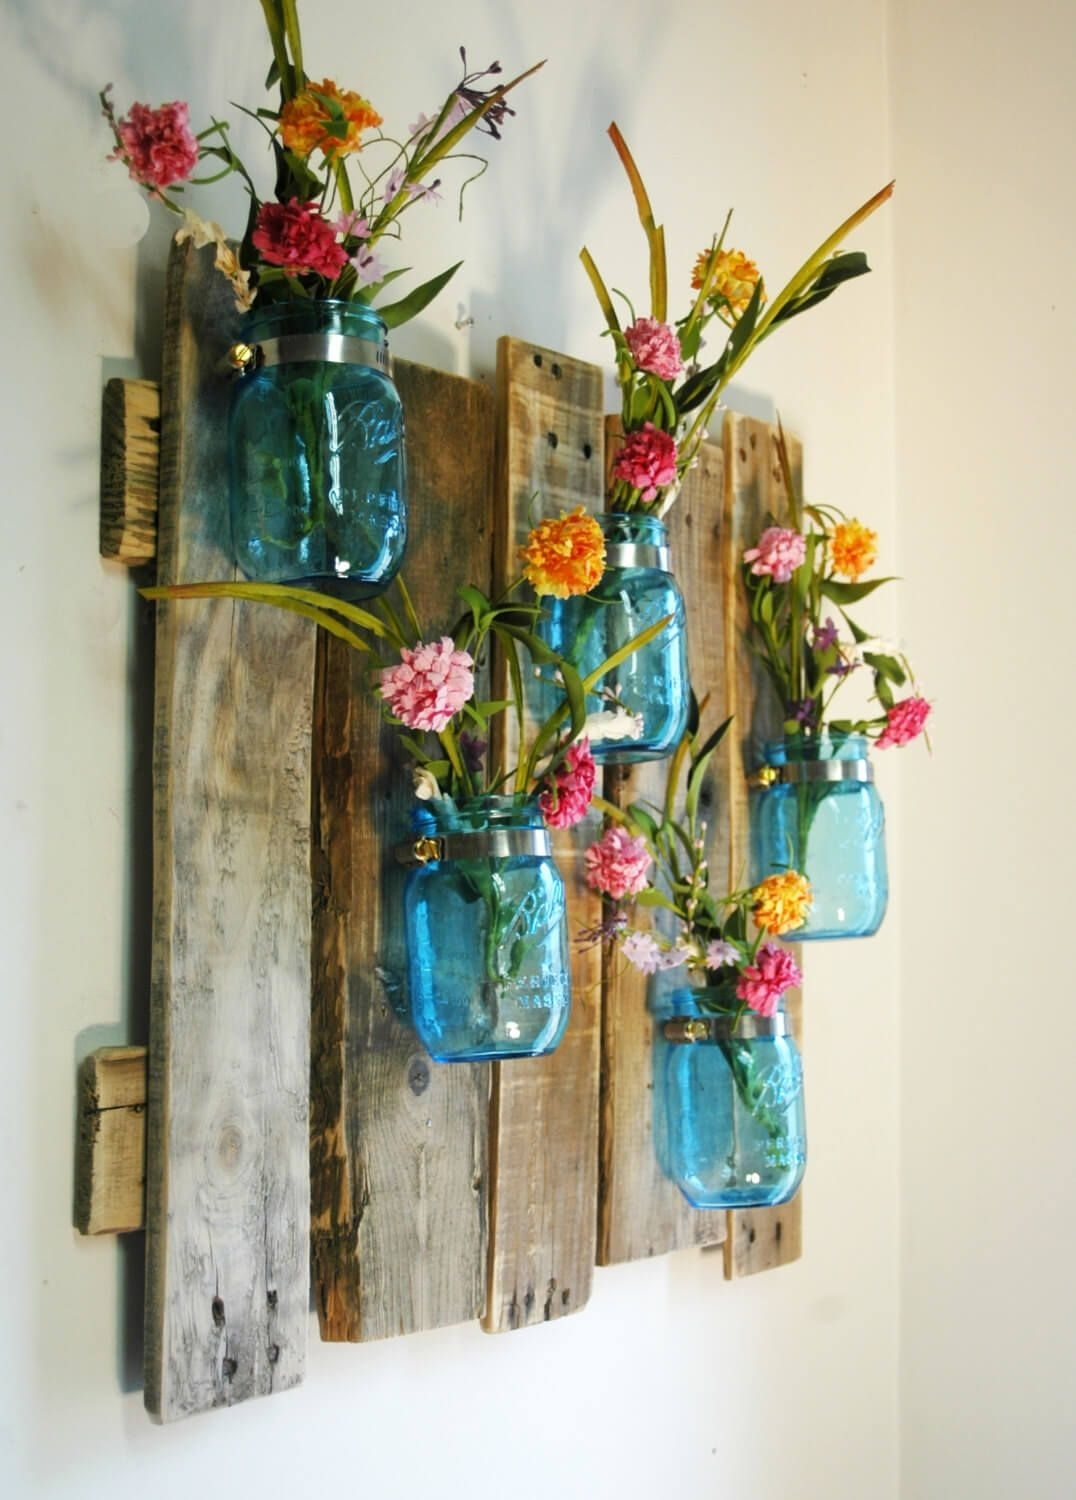 24 Enchanting Mason Jar Wall Decor Ideas To Brighten Your Walls with regard to Mason Jar Wall Art (Image 3 of 20)